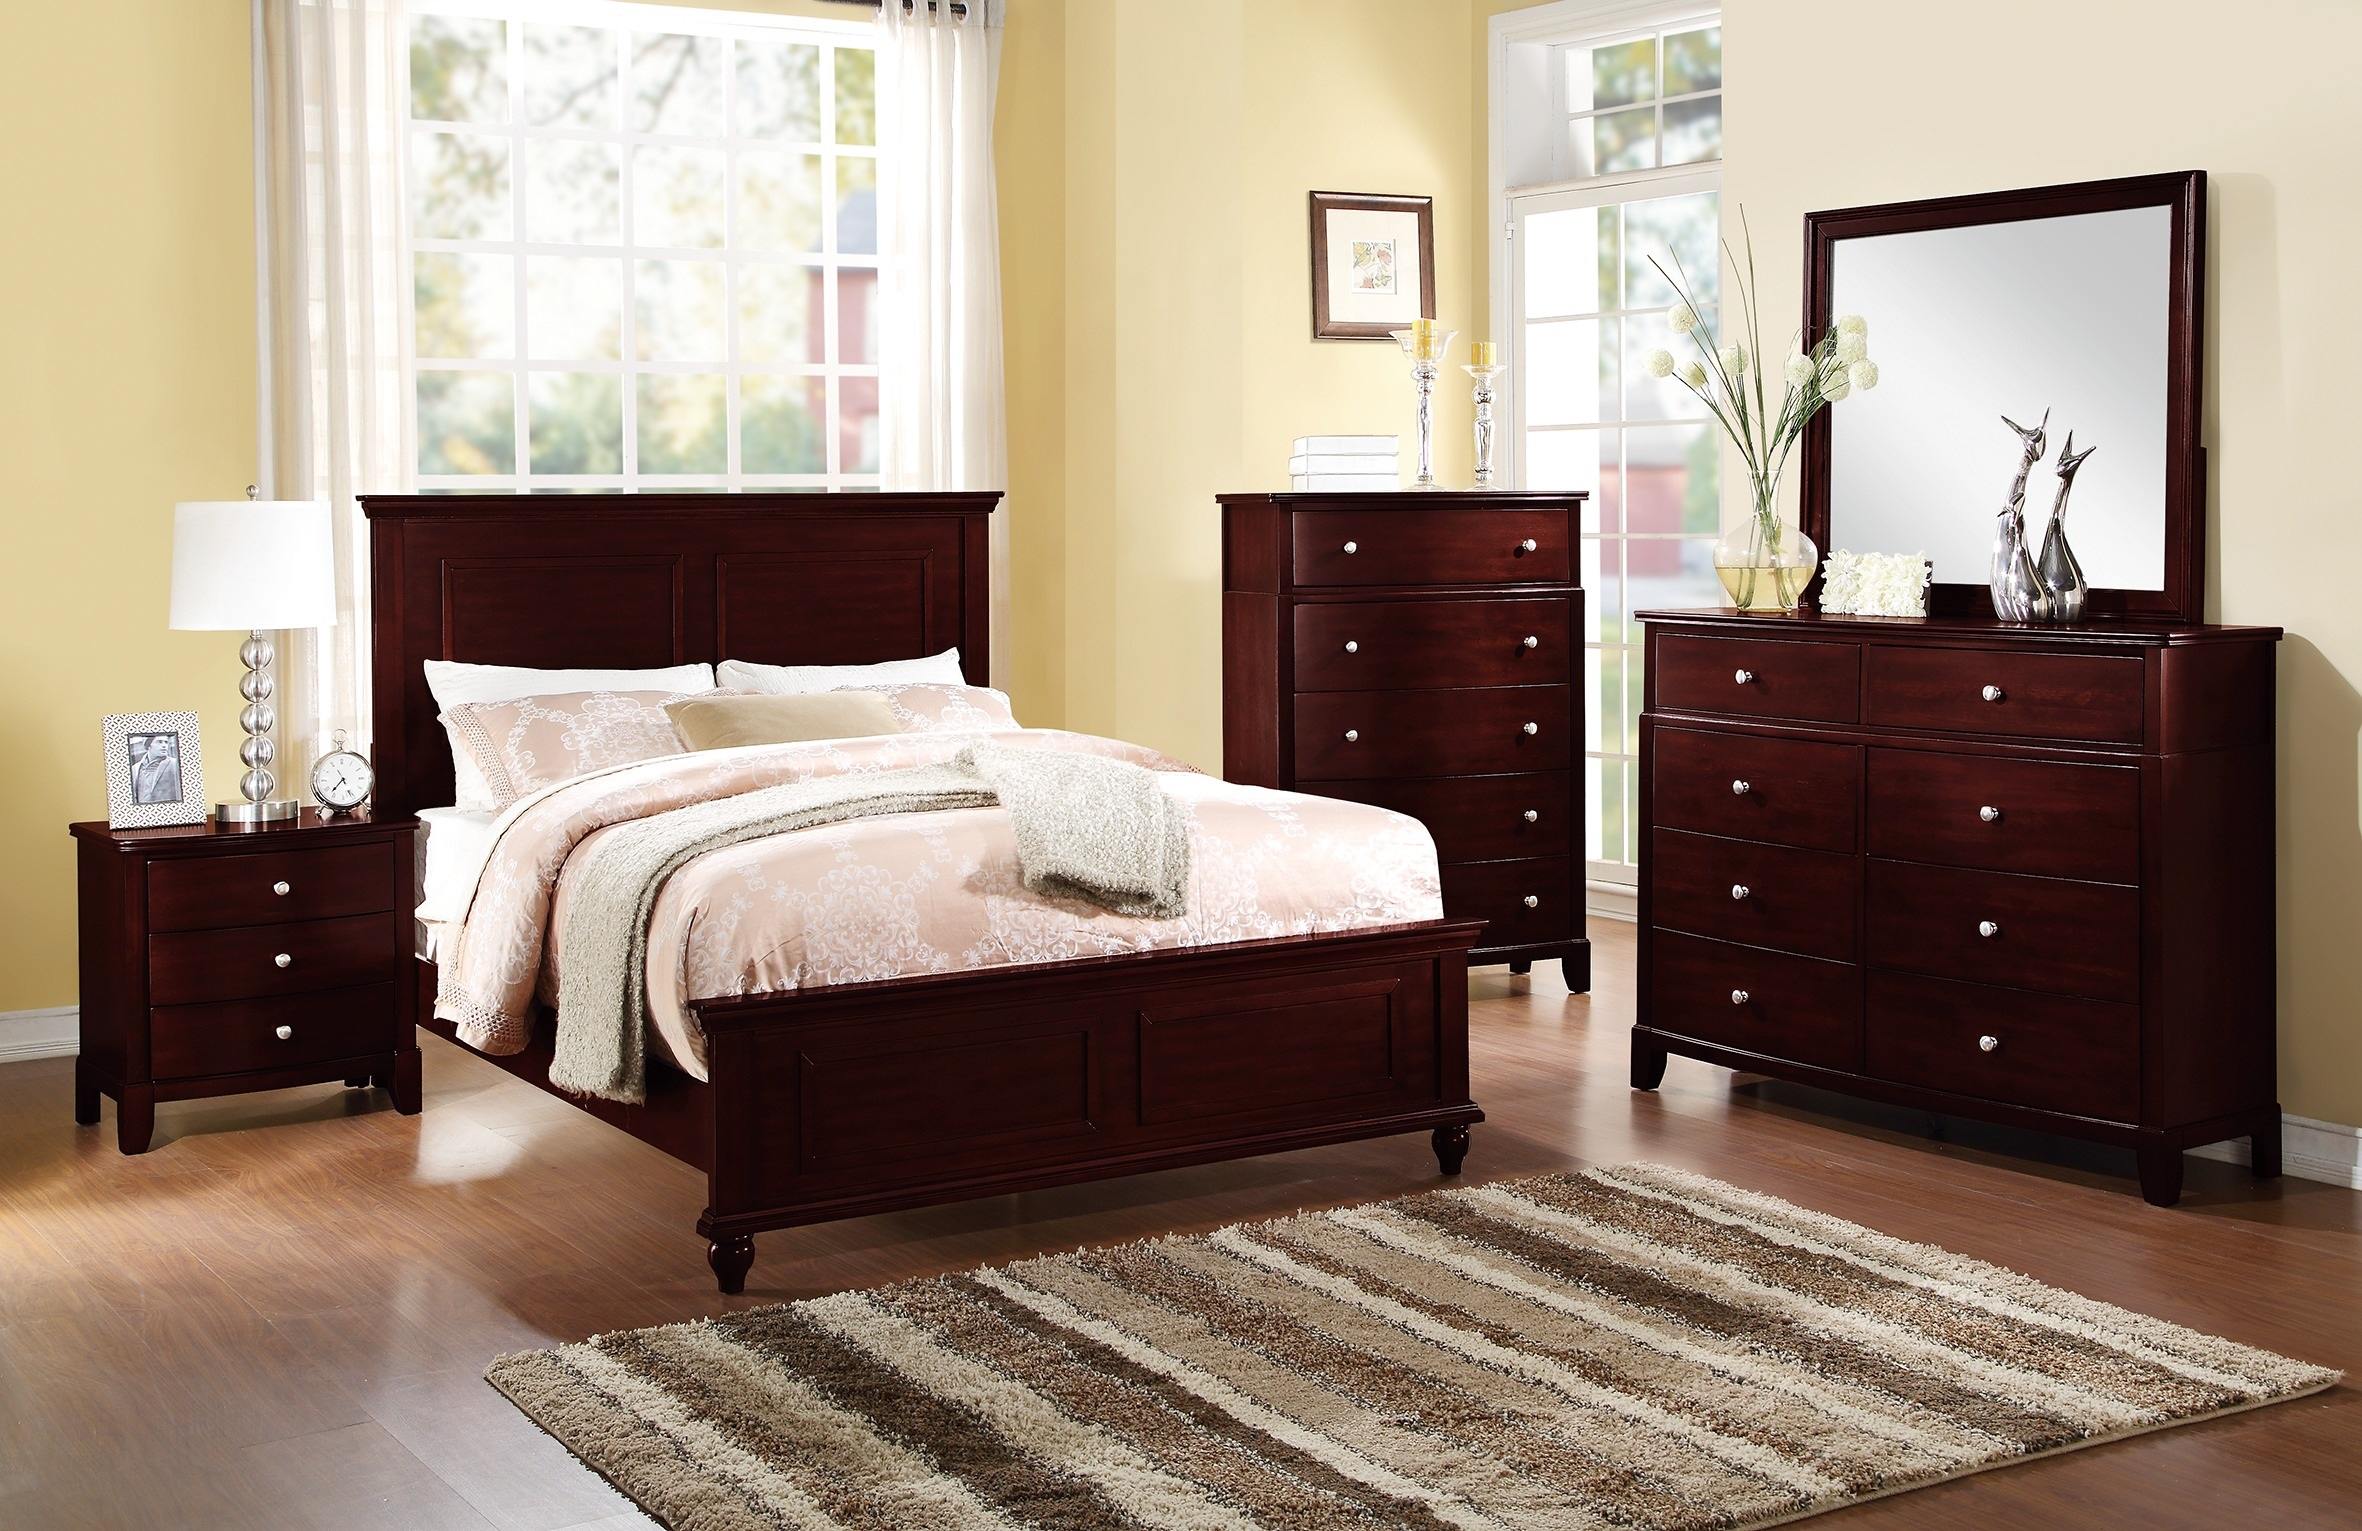 Country Living Bedroom Furniture Classic Dark Brown Color 4pc Set  California King Size Bed Dresser Mirror